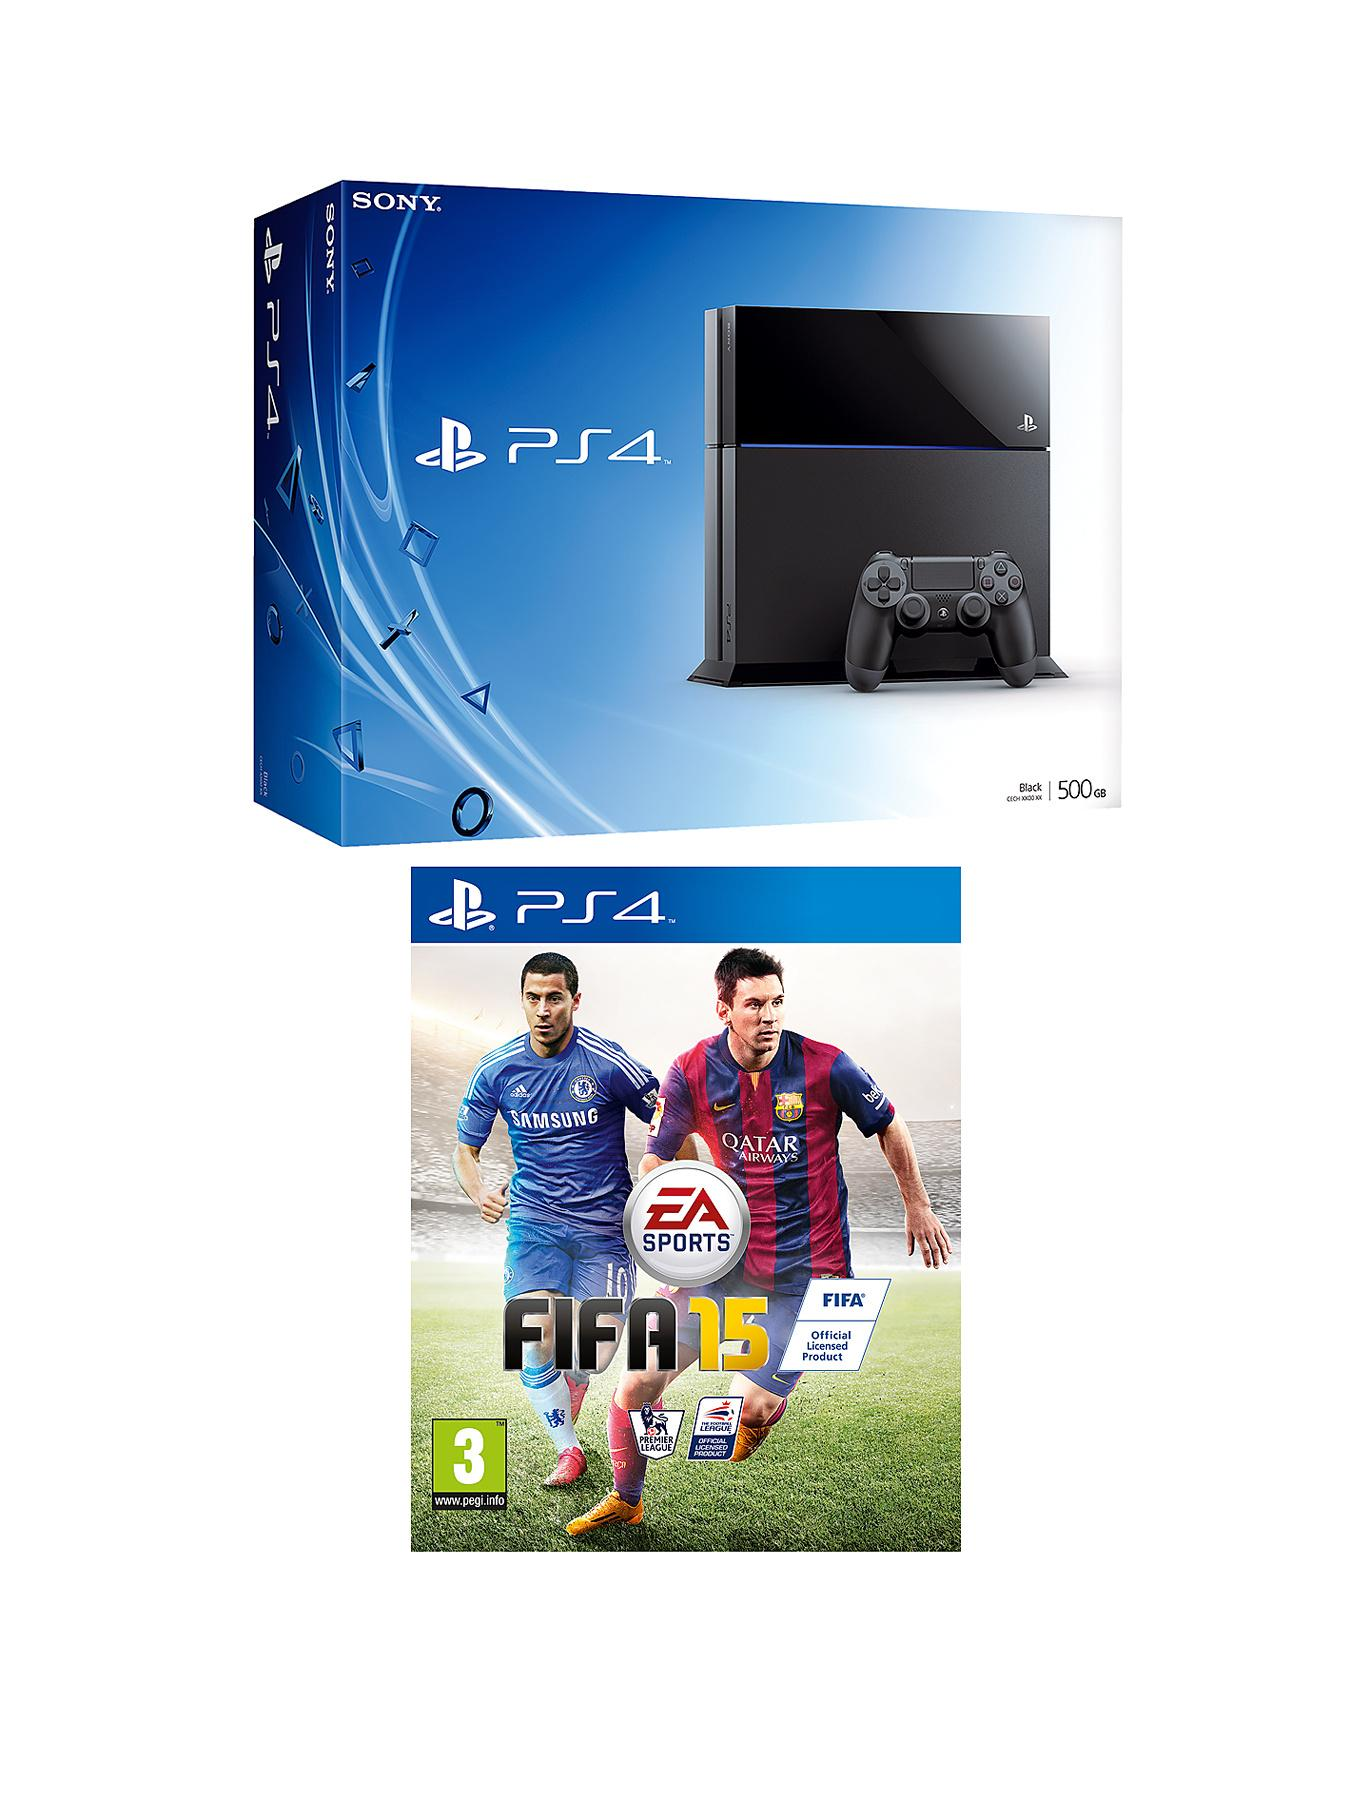 Playstation 4 Console with FIFA 15 and Optional Dual Shock 4 Controller, 90 Day or 12 Months PlayStation Plus